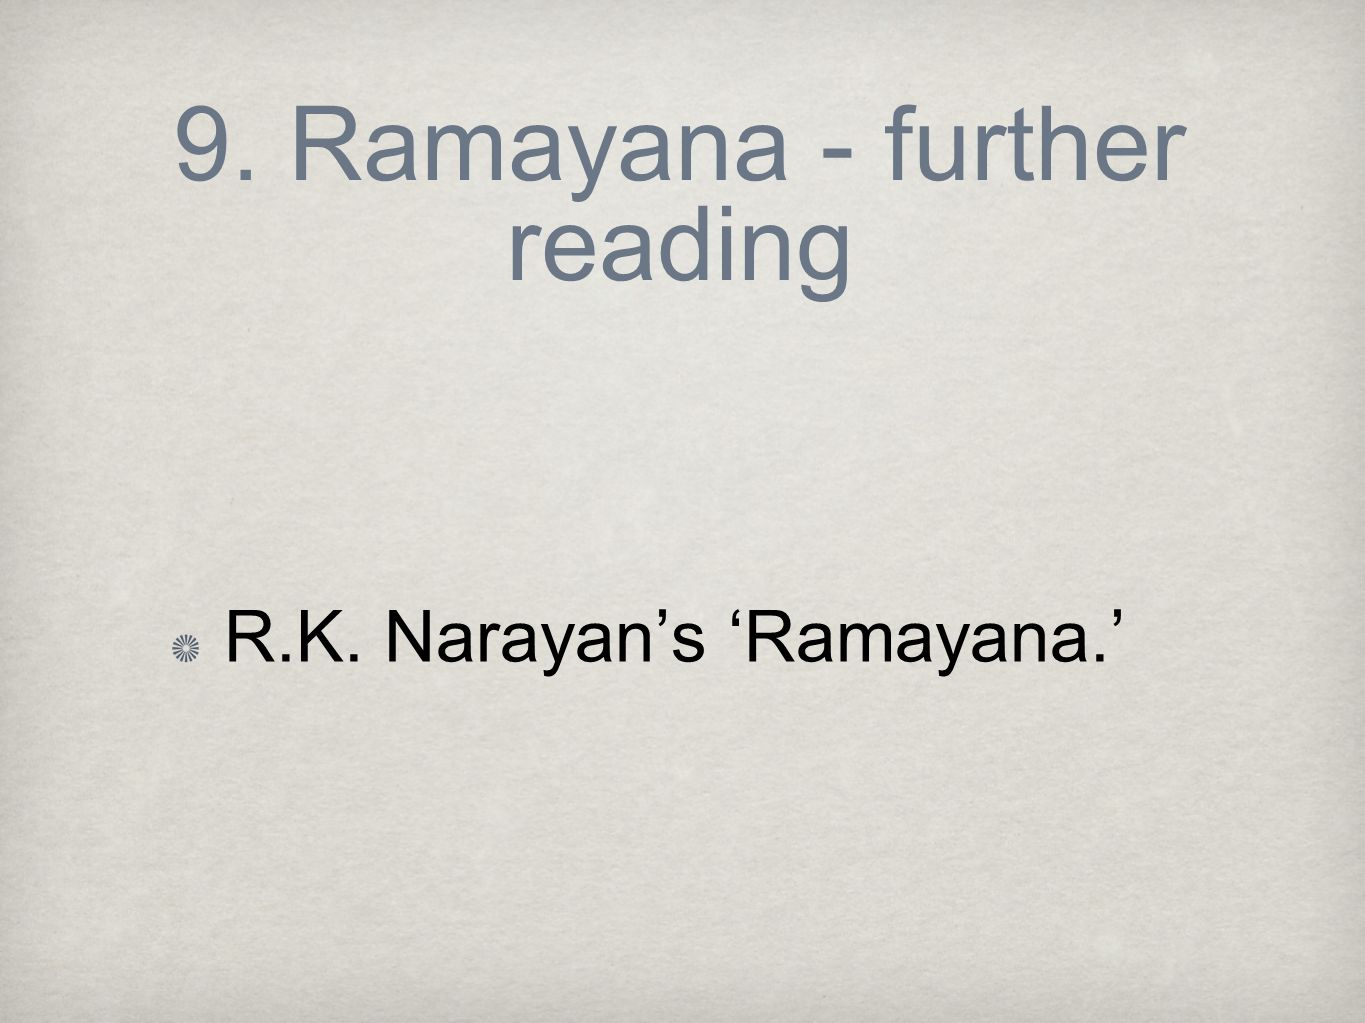 another community r k narayan Read this article to know about the guide summary written by rk narayan, the guide by rk narayan pdf, the guide pdf, novel, indian novel, the guide by rk narayan summary, the guide by rk narayan critical analysis pdf.